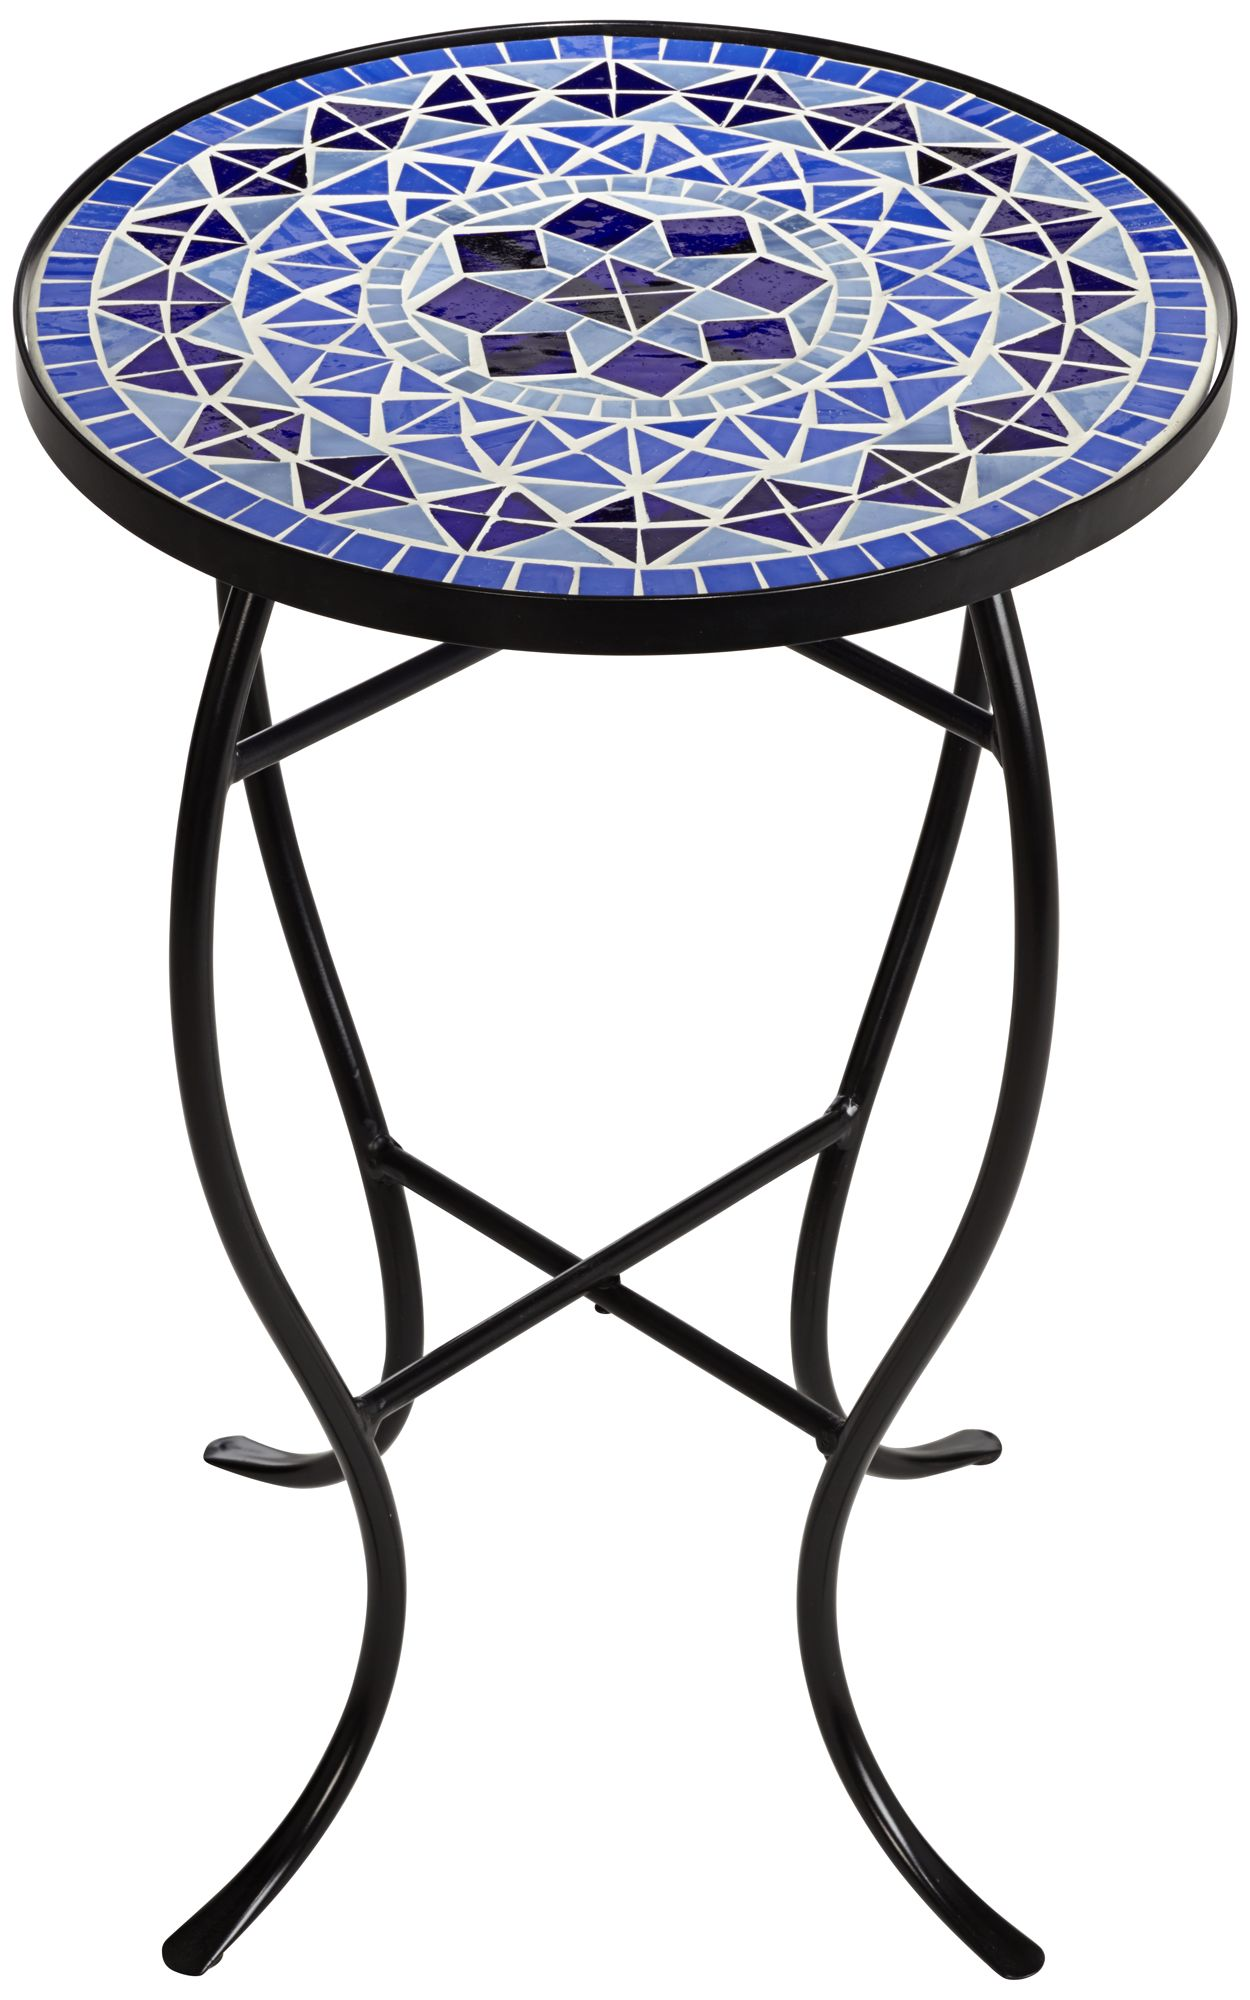 Cobalt Mosaic Black Iron Outdoor Accent Table - #6F095 ... on Outdoor Living Iron Mosaic id=94704